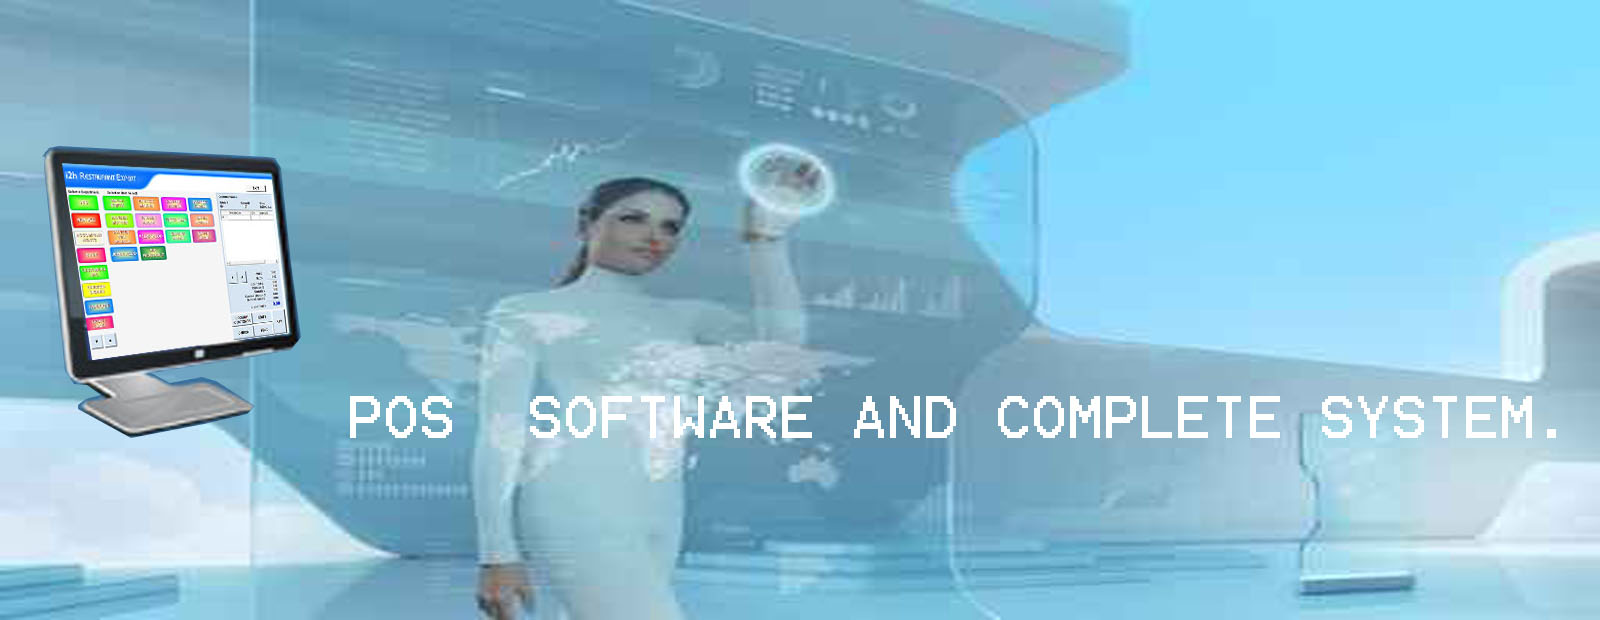 Point of sale System & Software.